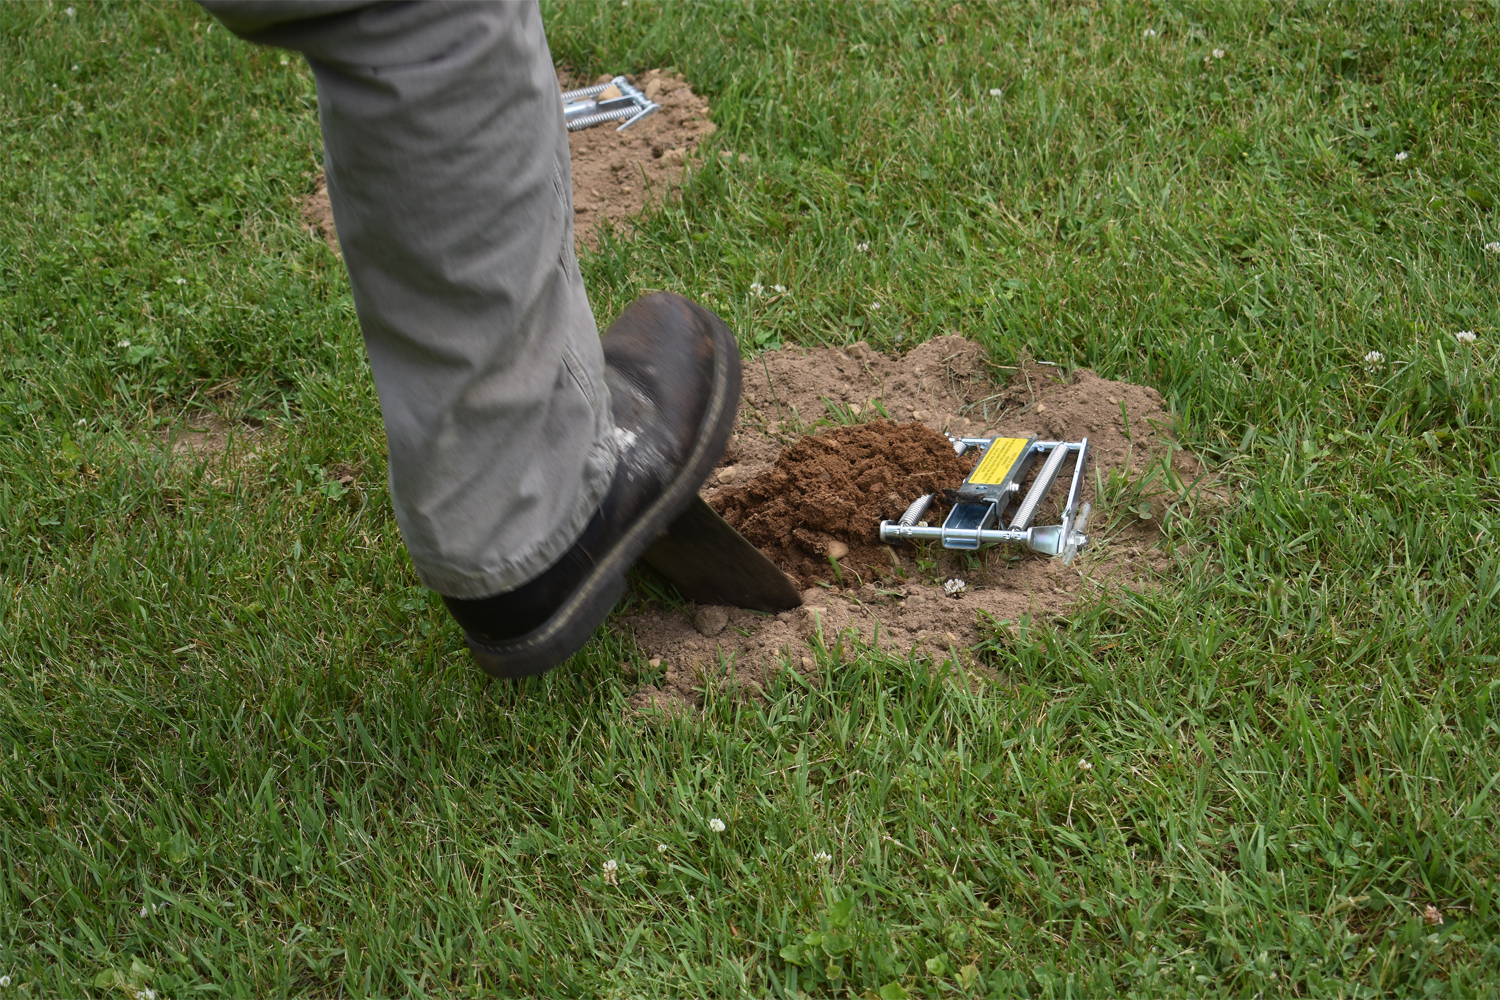 Moles digging up your yard?